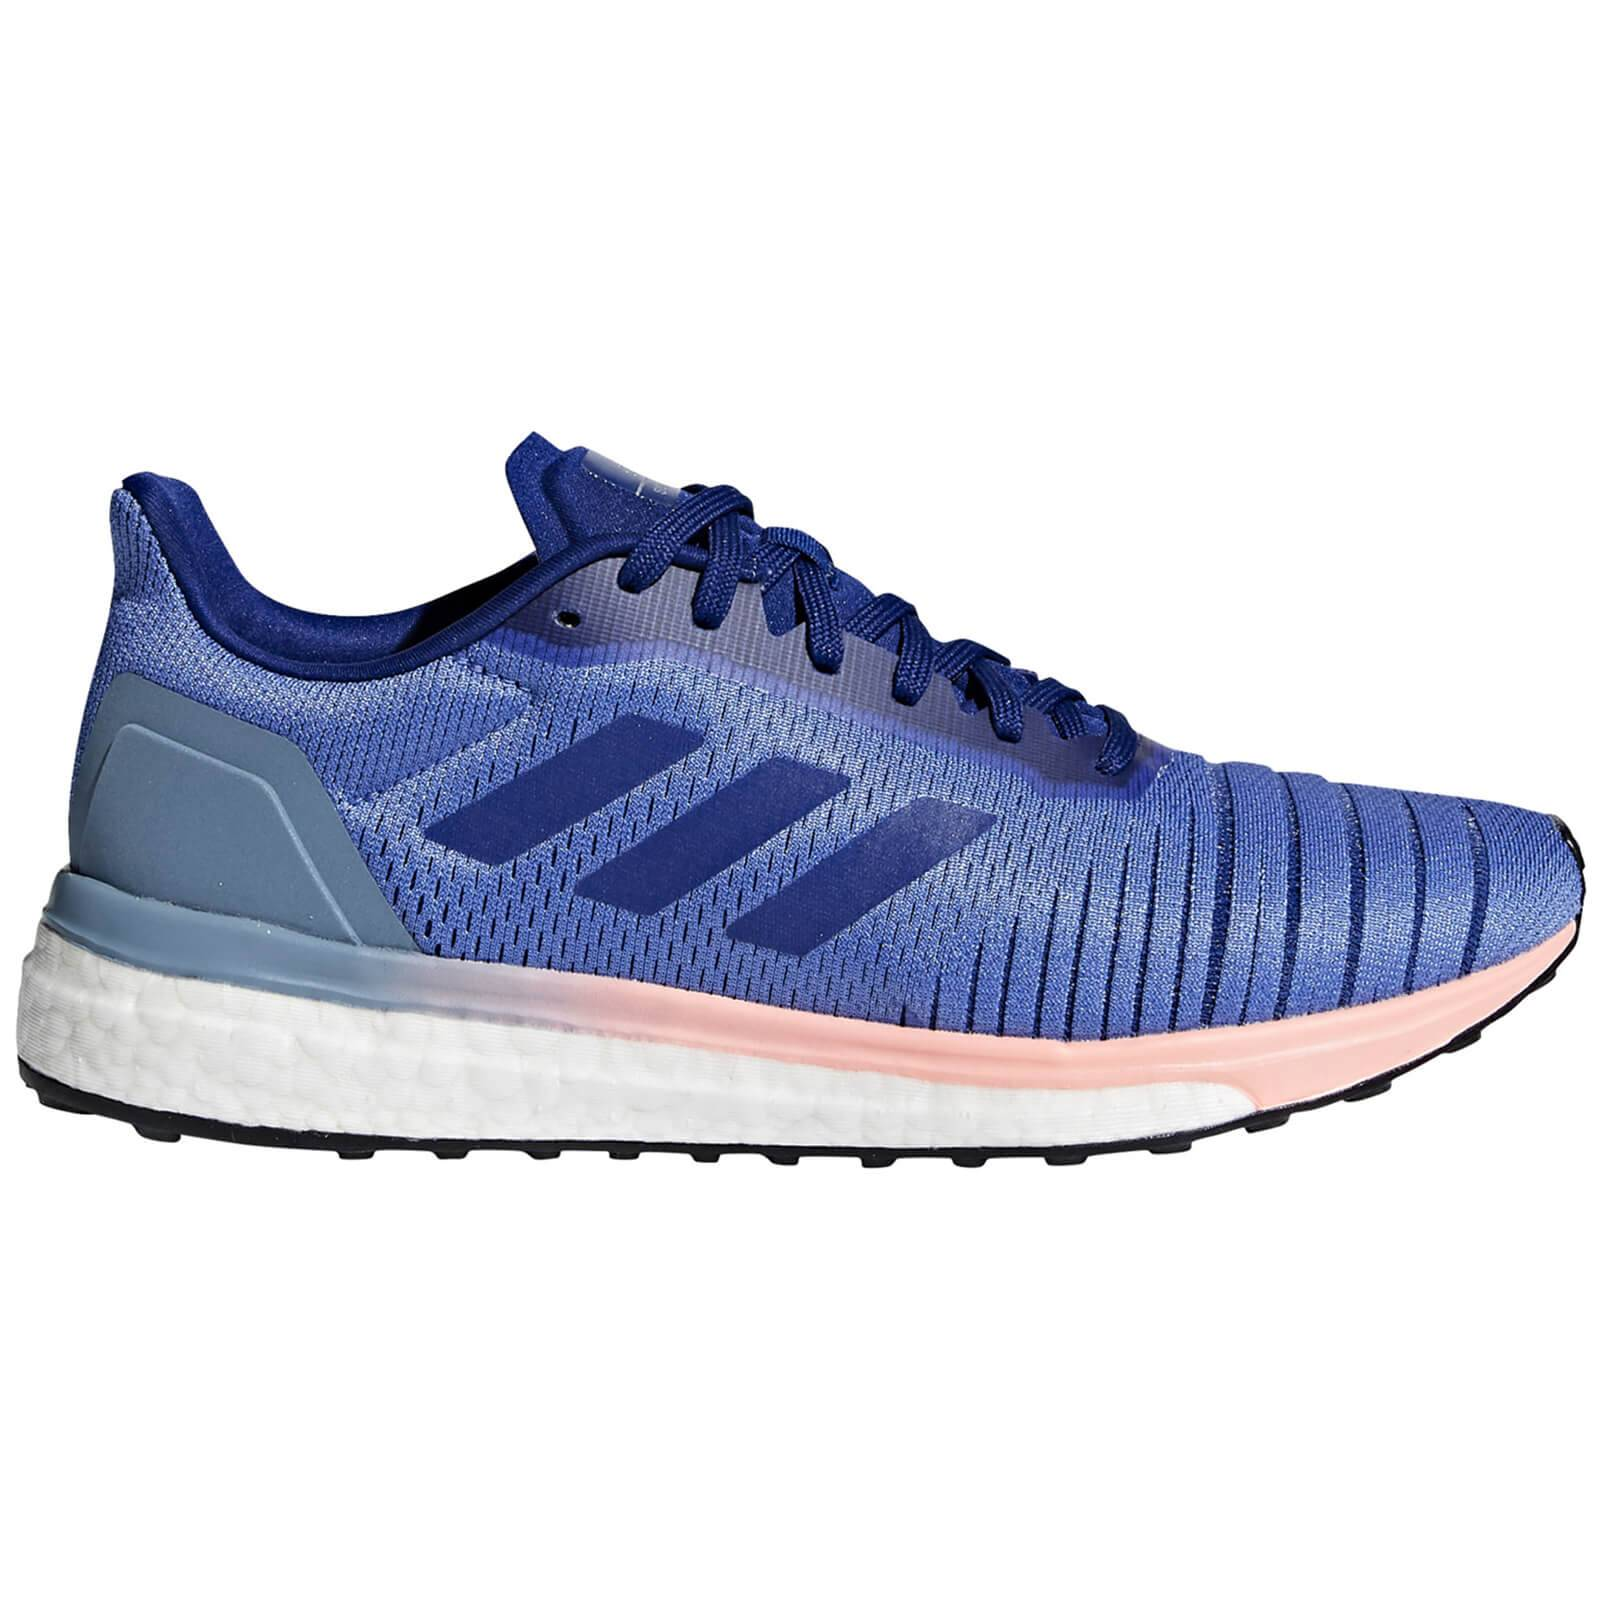 adidas Women's Solar Drive Running Shoes - Lilac/Ink - US 8.5/UK 7 - Purple/Blue